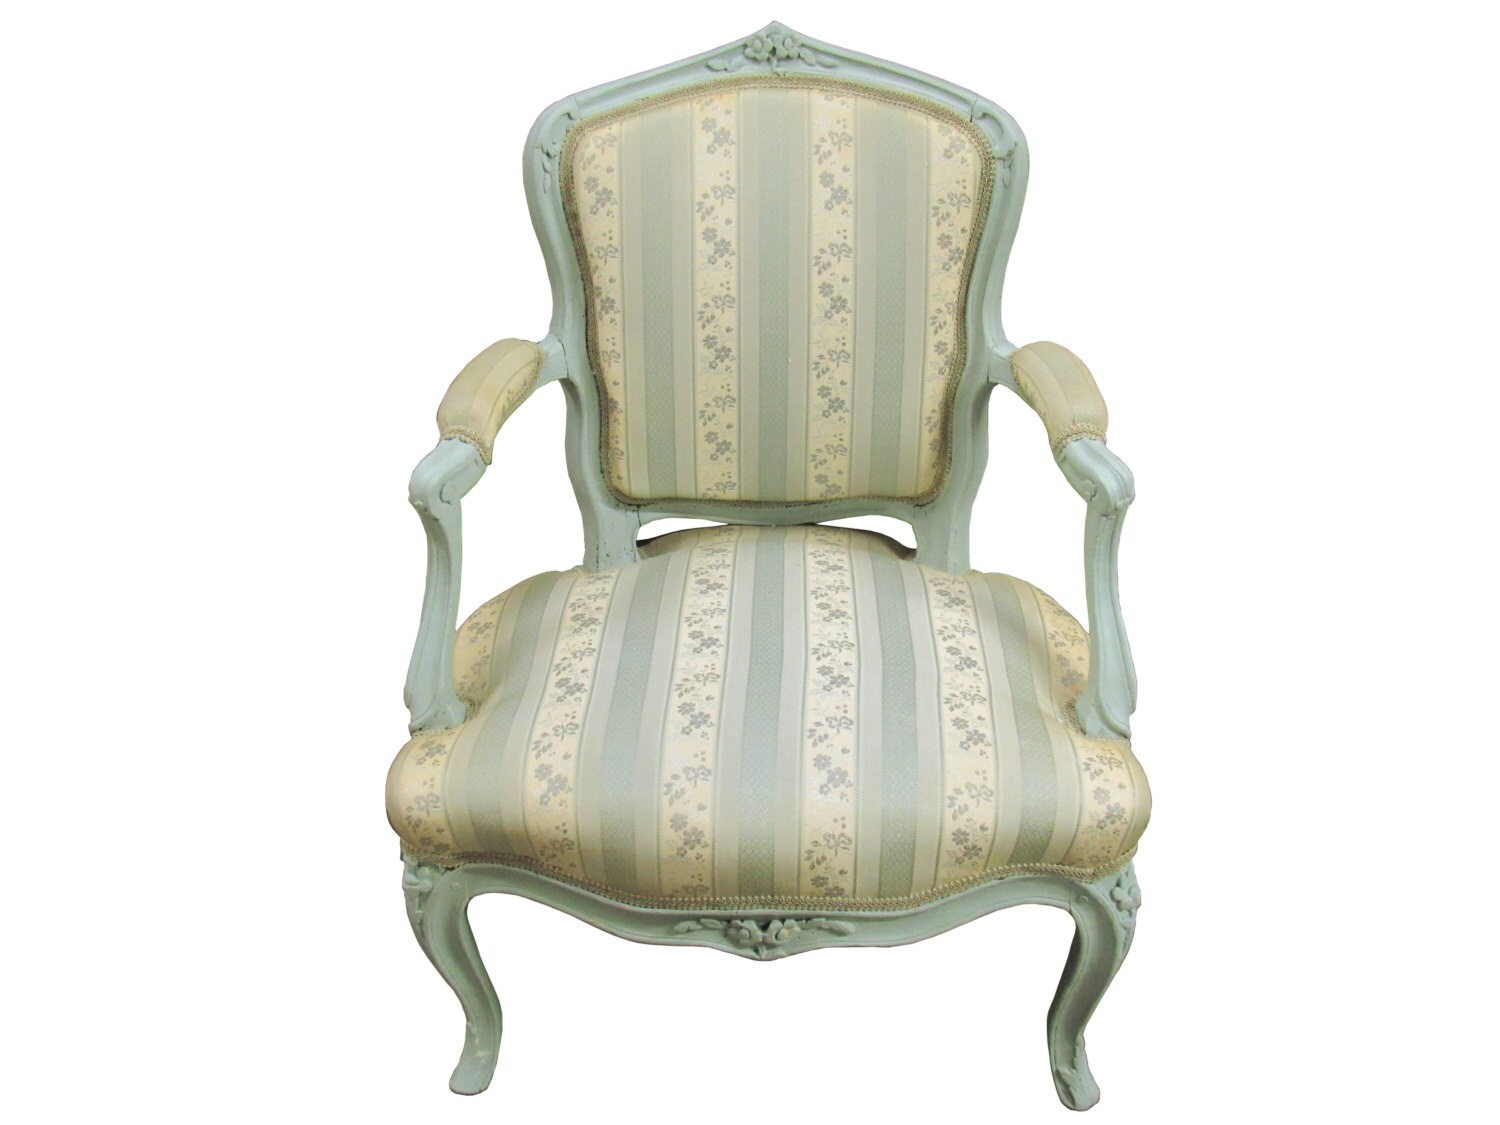 Fauteuil Shabby Chic Antique French Bergere French Upholstered Fauteuil Antique French Ladies Armchair French Painted Armchair Vintage French Mint Bergere